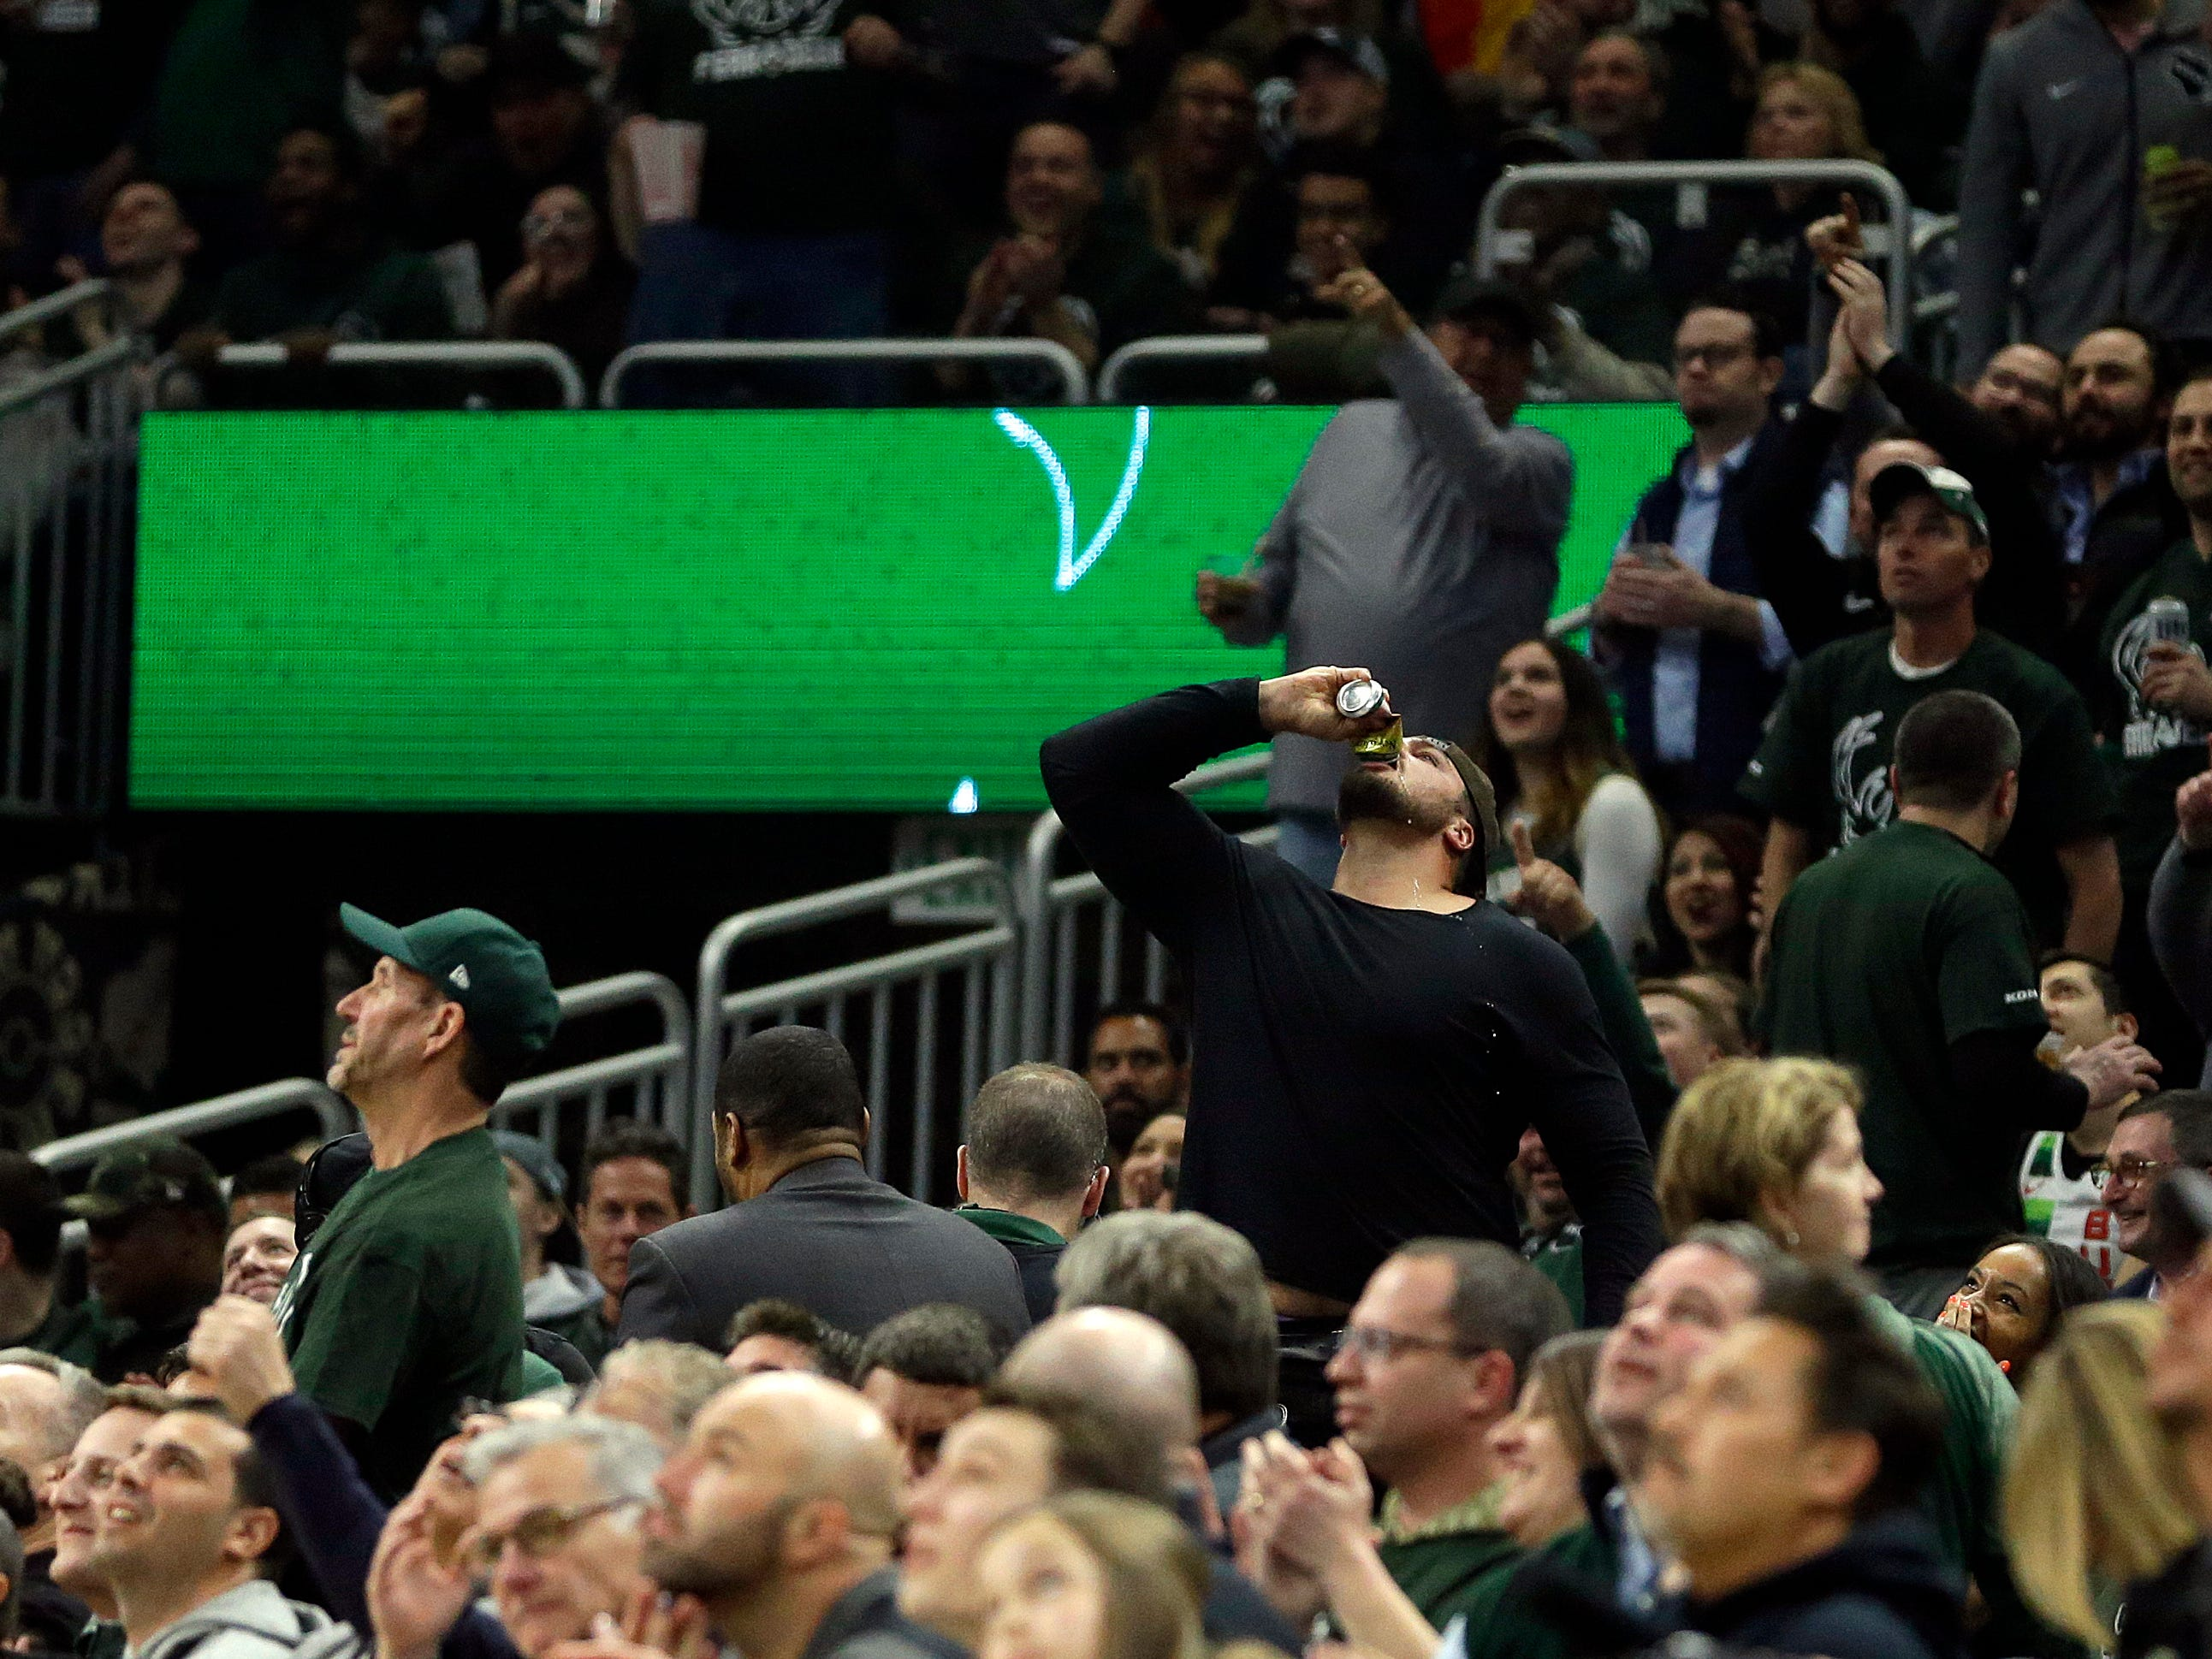 April 17: Packers offensive lineman David Bakhtiari chugs a beer and fires up the crowd during Game 2 between the Bucks and Pistons in Milwaukee.